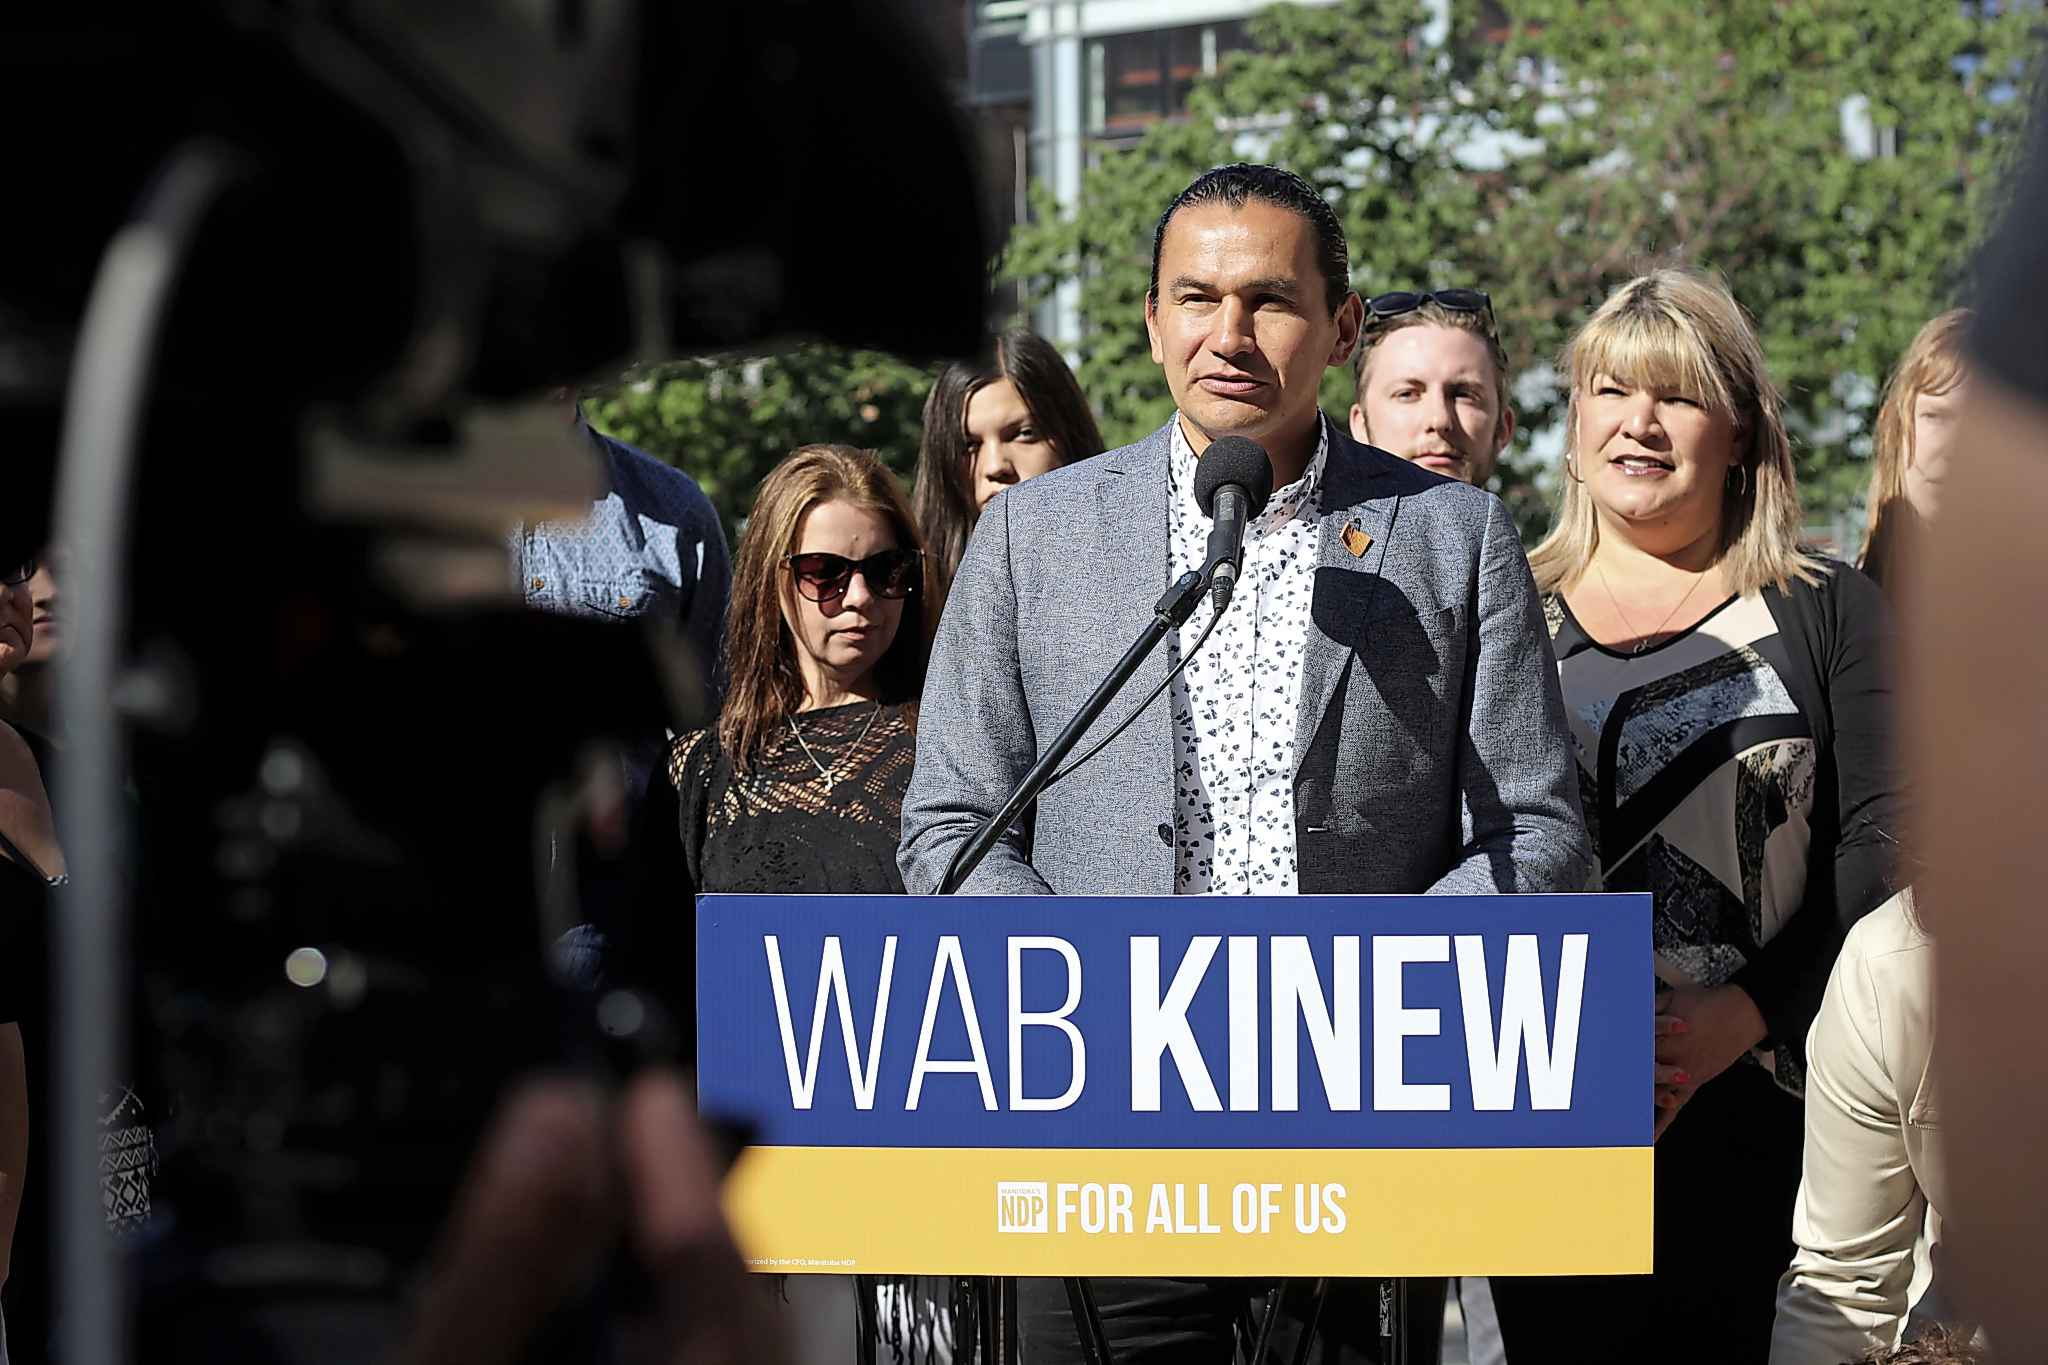 JESSICA BOTELHO-URBANSKI / WINNIPEG FREE PRESS</p><p>NDP Leader Wab Kinew made a series of post-secondary education promises with estimated annual costs around $10 million during a campaign announcement outside Red River College's Exchange District campus Friday.</p>